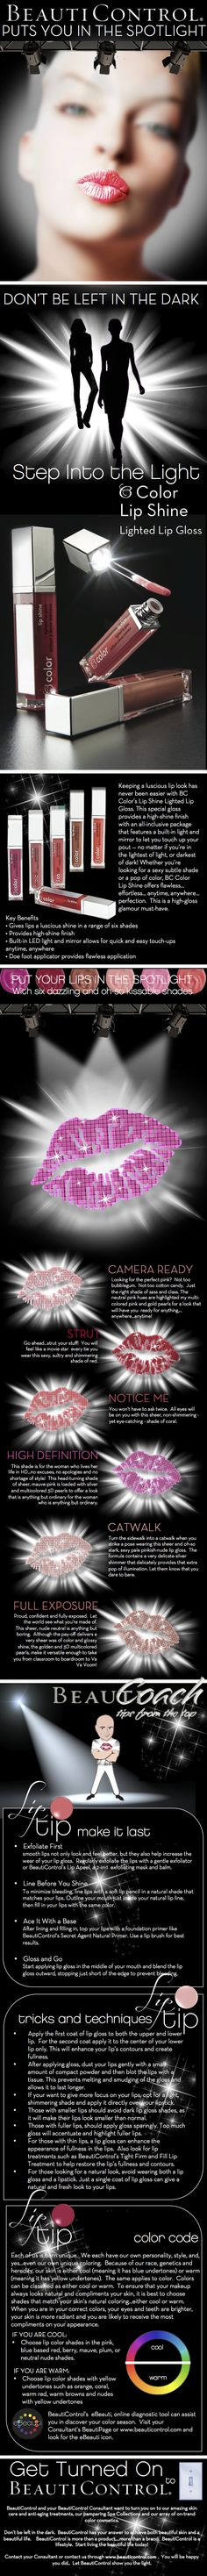 Put your lips in the spotlight with BeautiControl!  www.beauticontrol.com